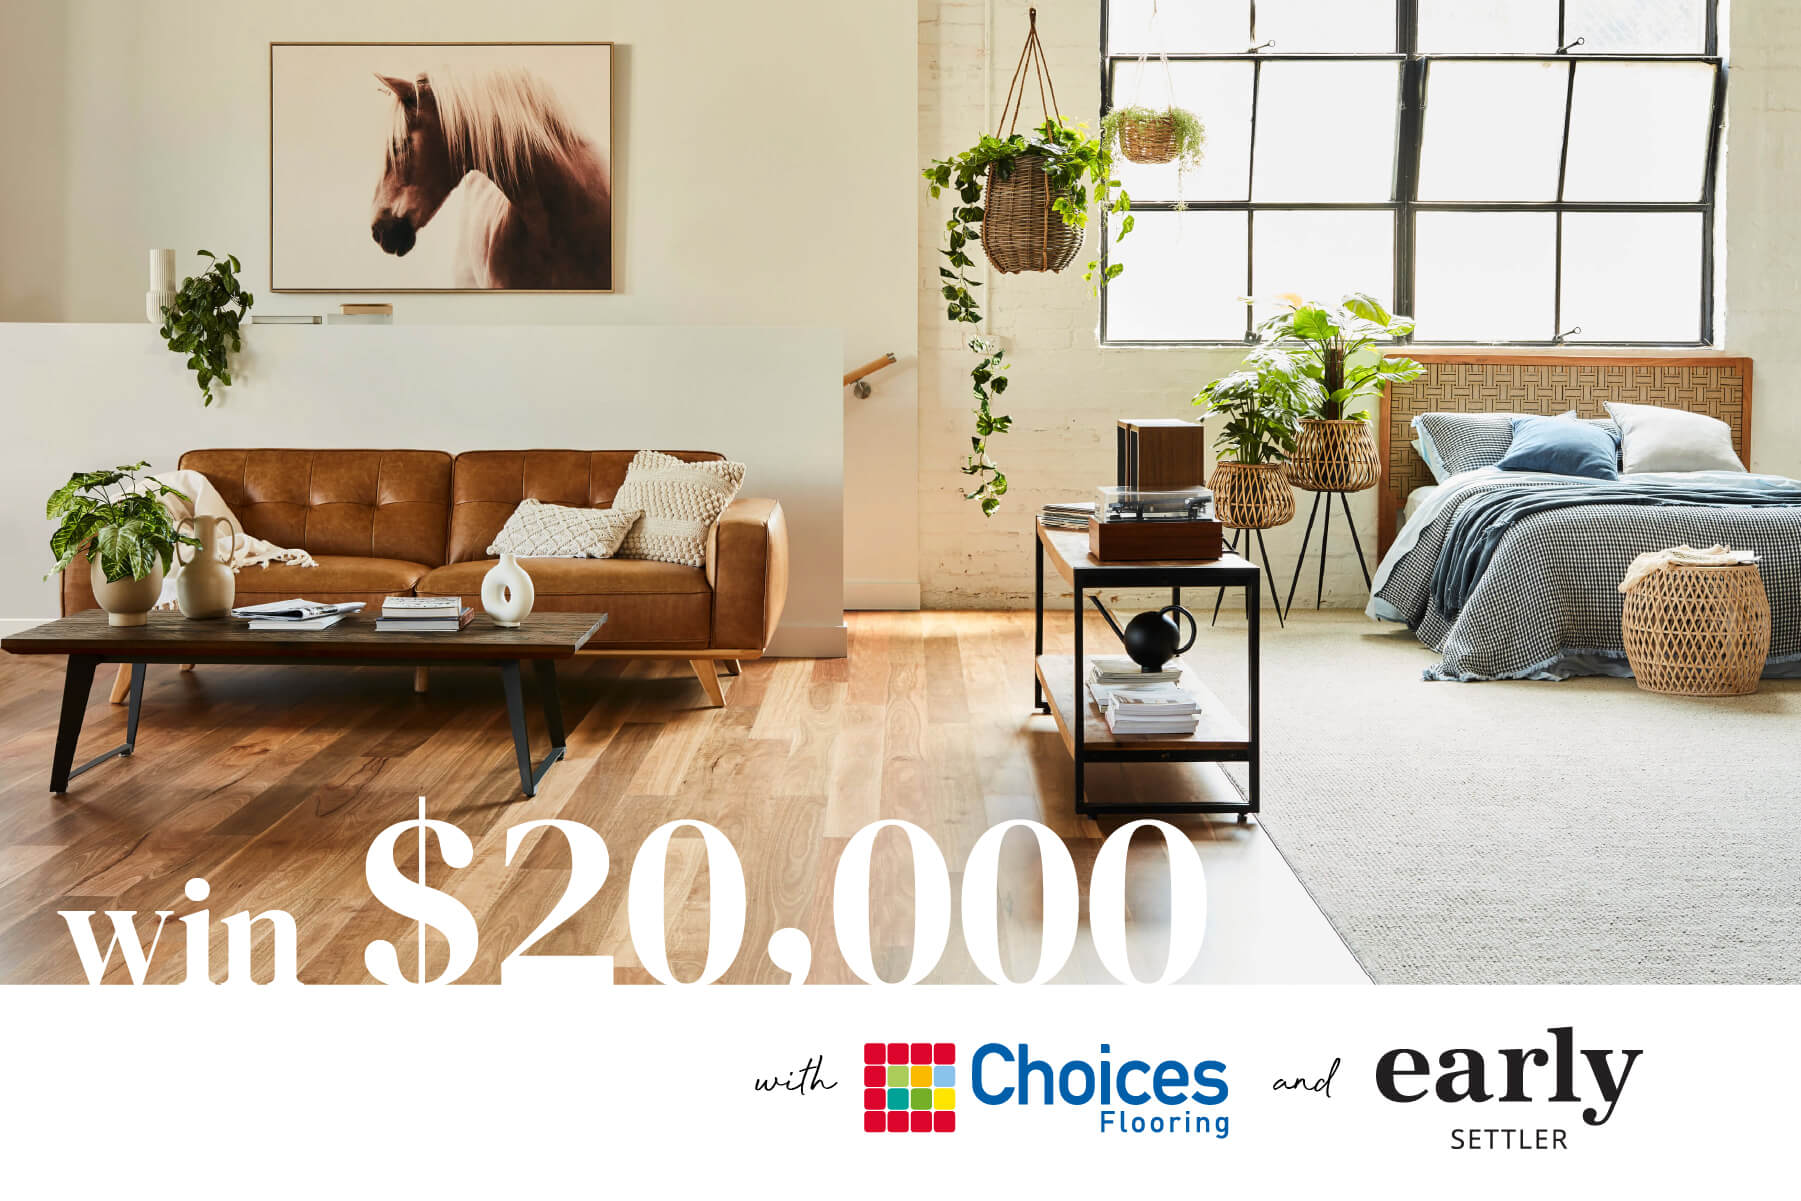 Win $20,000 with Choice Flooring and Early Settler